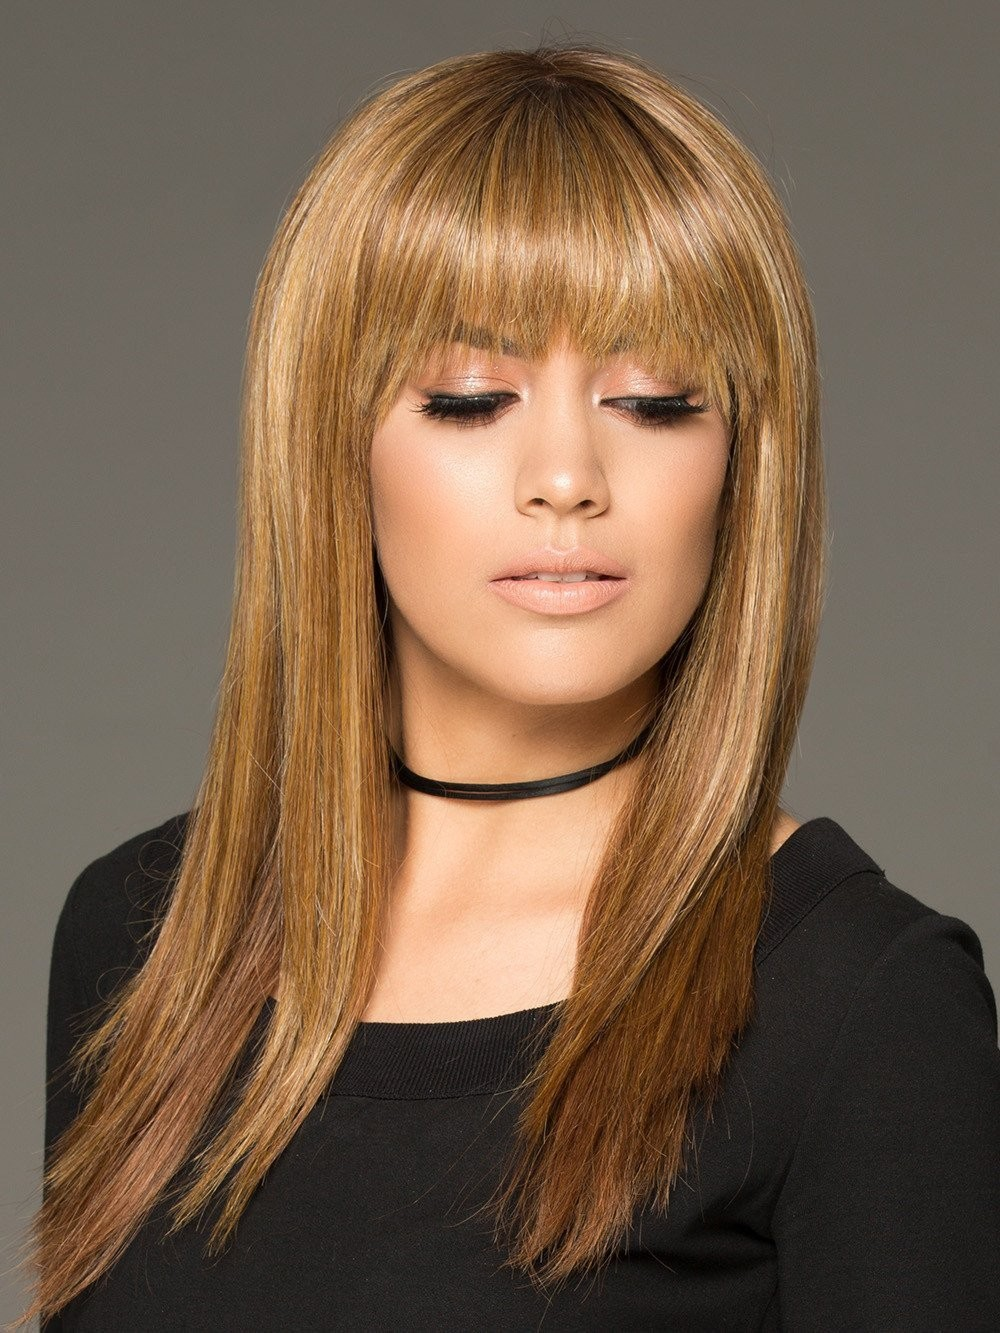 Long Straight Human Hair Blonde Wigs Modern Hairstyle with A Blunt Bang